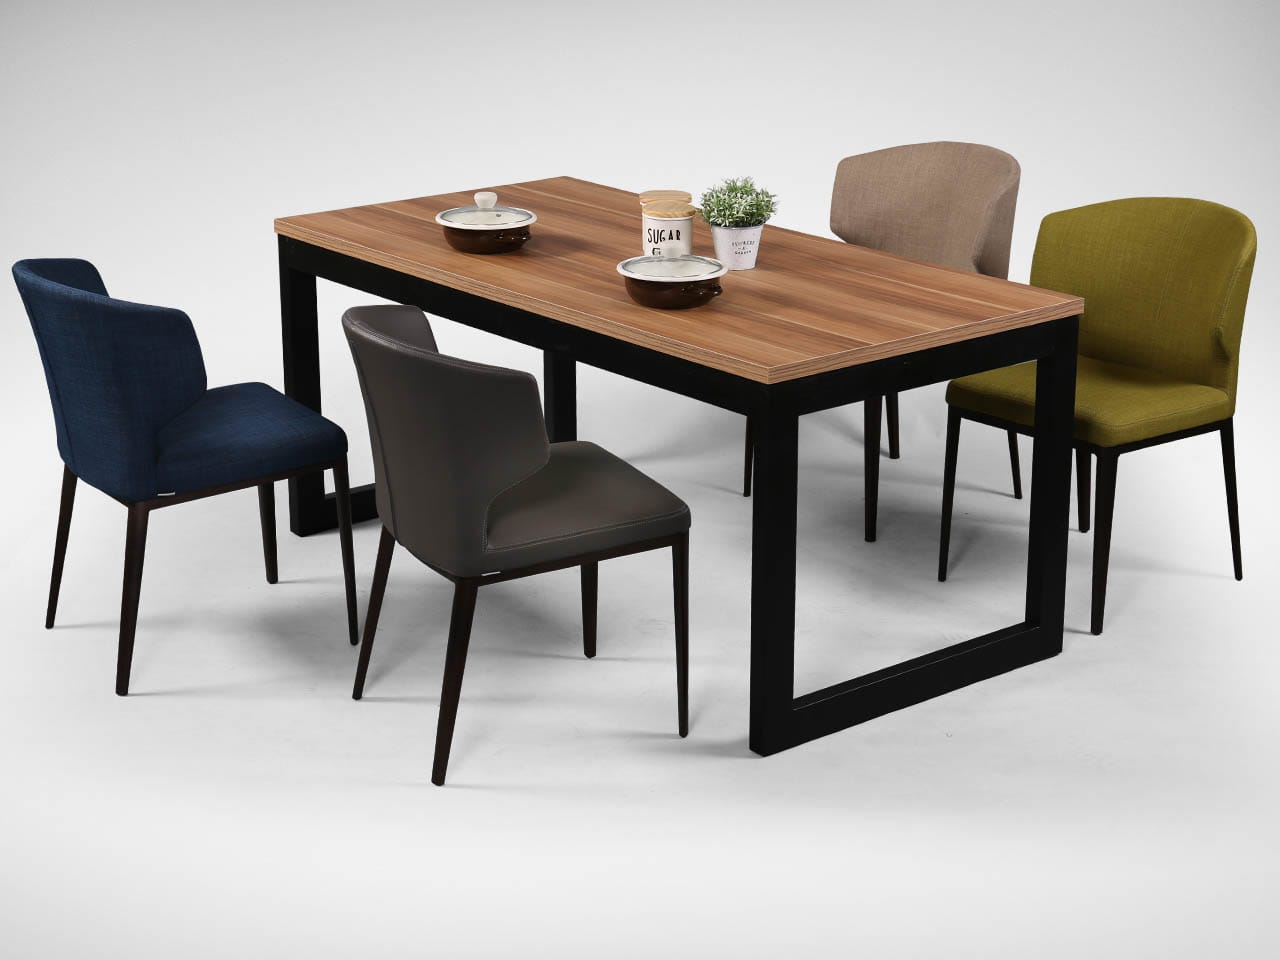 [Elephant Sidechair &amp; Laminate Dining Table + Uni Table Leg]<br />